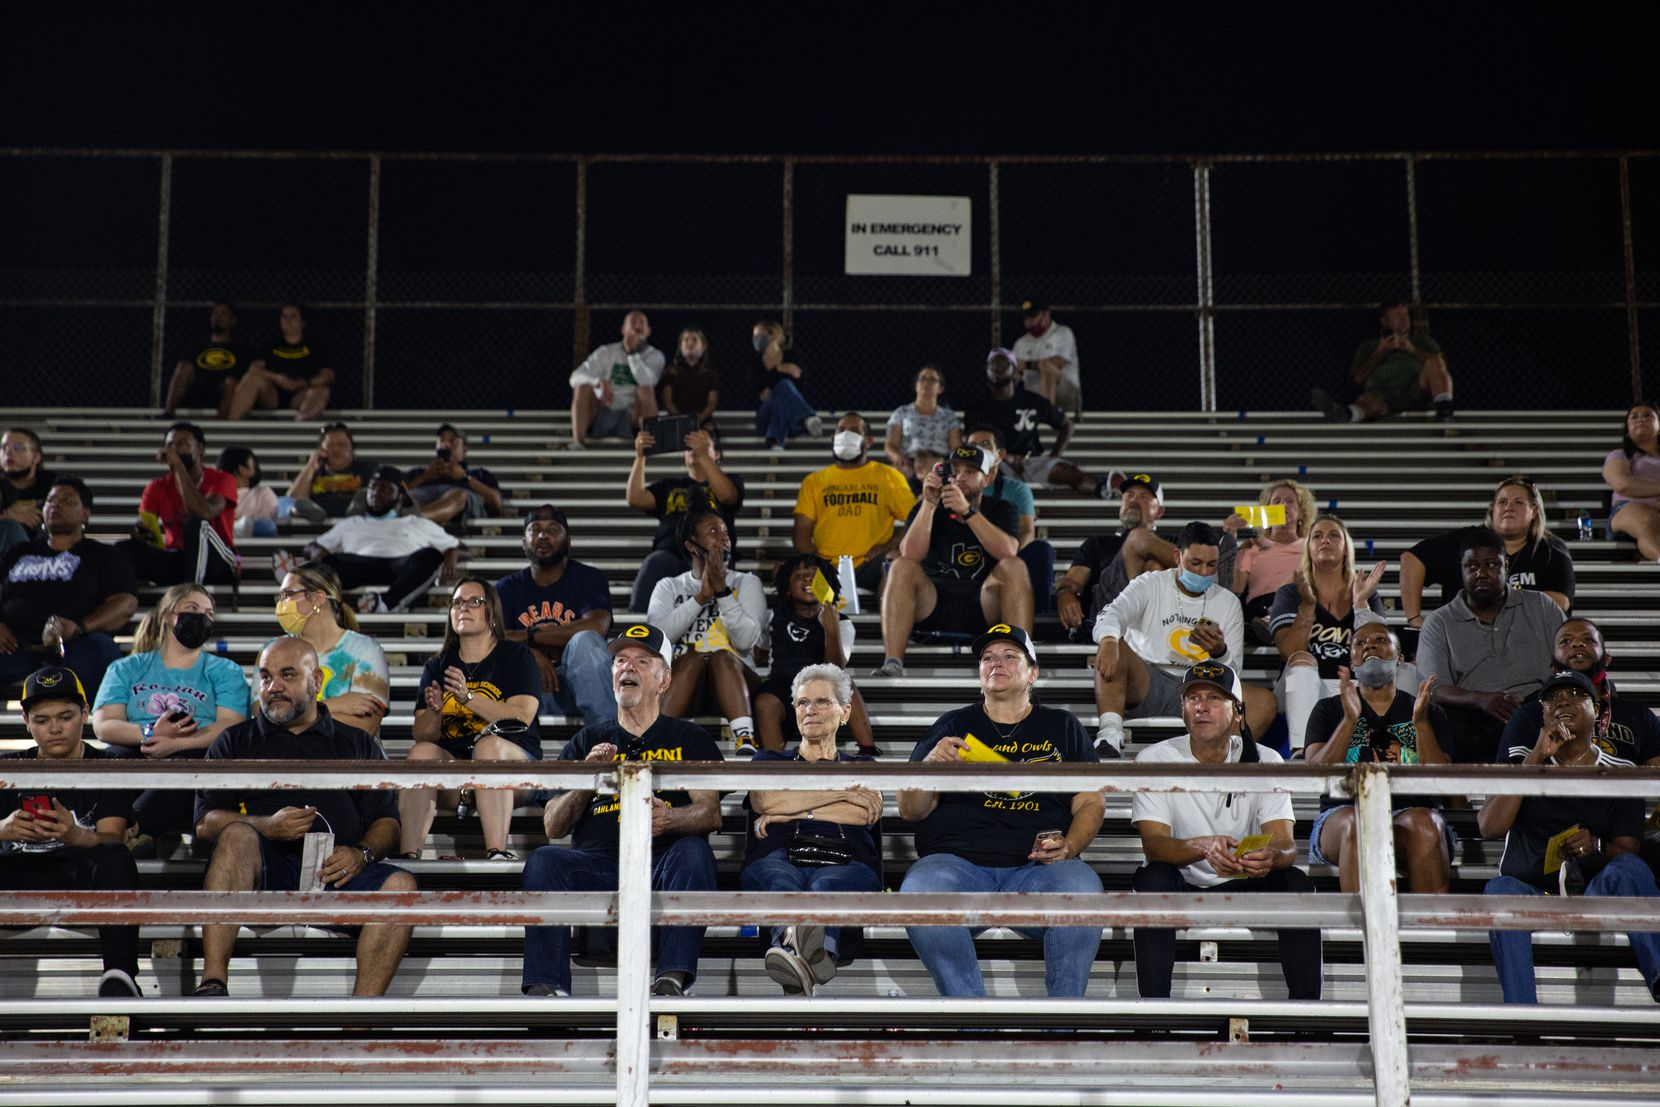 Garland High School fans at Sprague Stadium watch the the season-opening game between Garland High School and Justin F. Kimball High School on August 27, 2021.  (Shelby Tauber/Special Contributor)